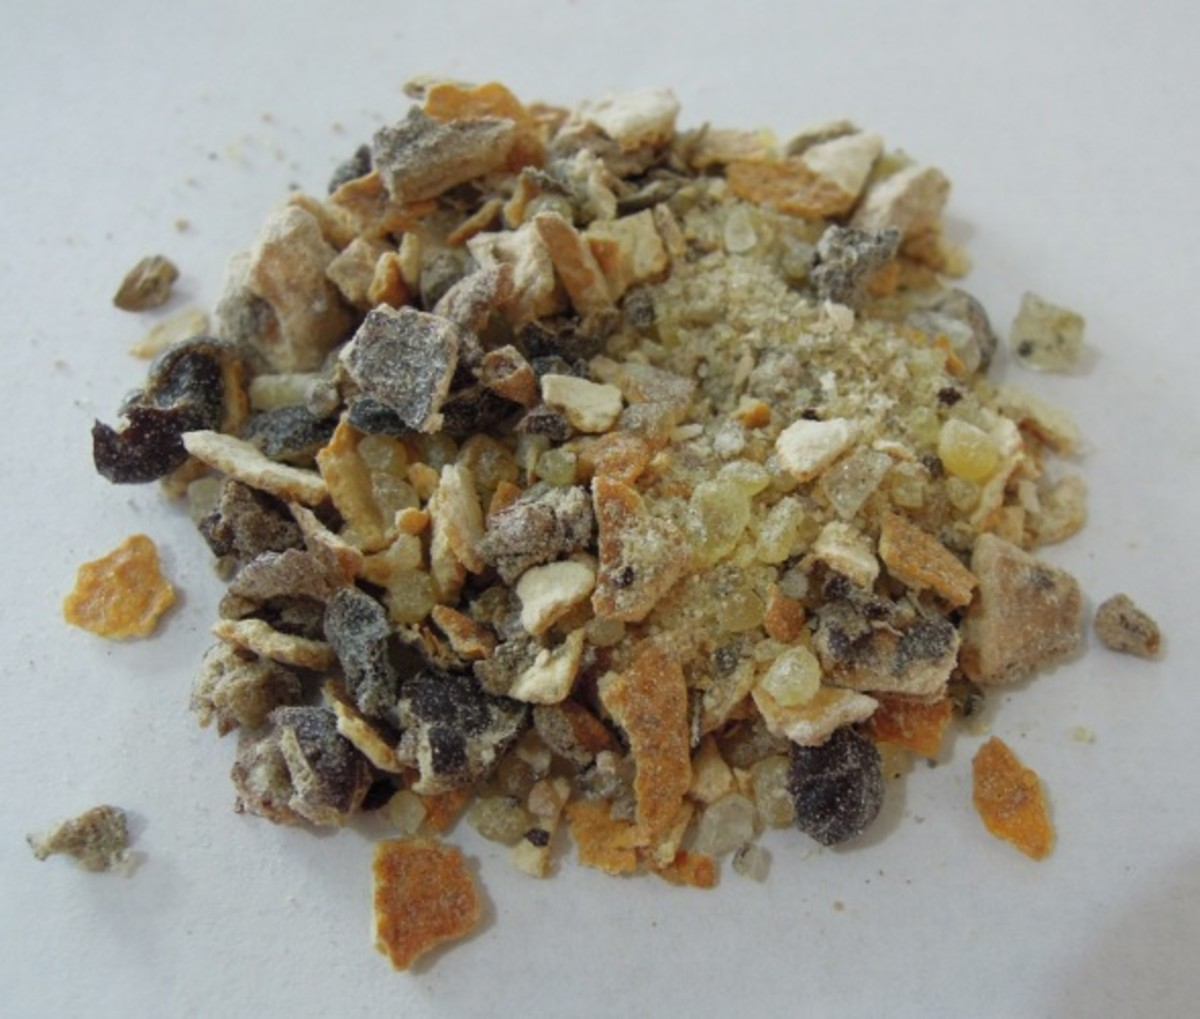 Citrus incense blend